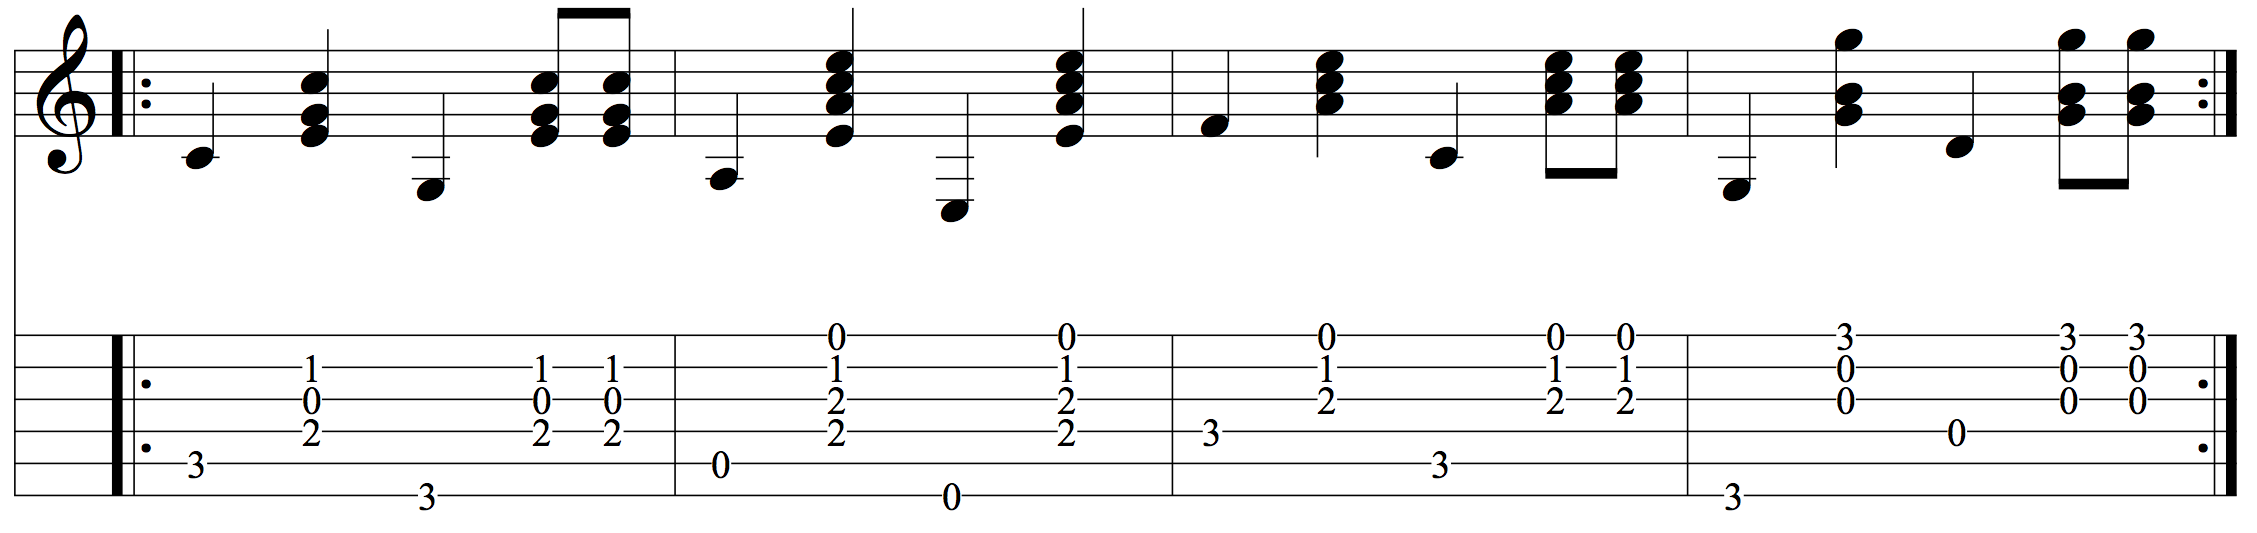 Building right-hand accuracy with an alternate root-five bass motion.